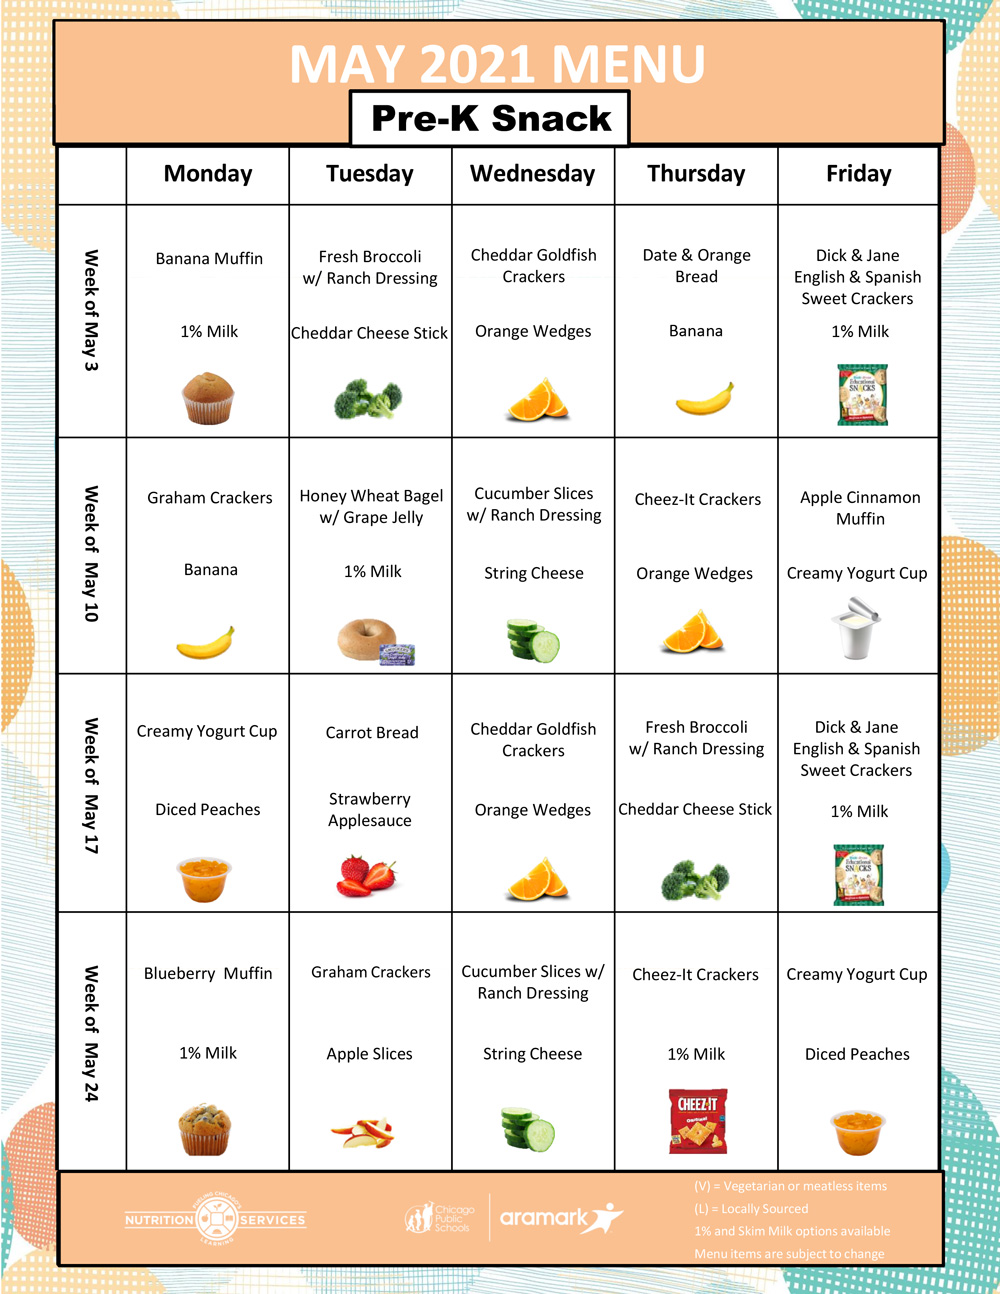 May 2021 Pre-K Snack Menu